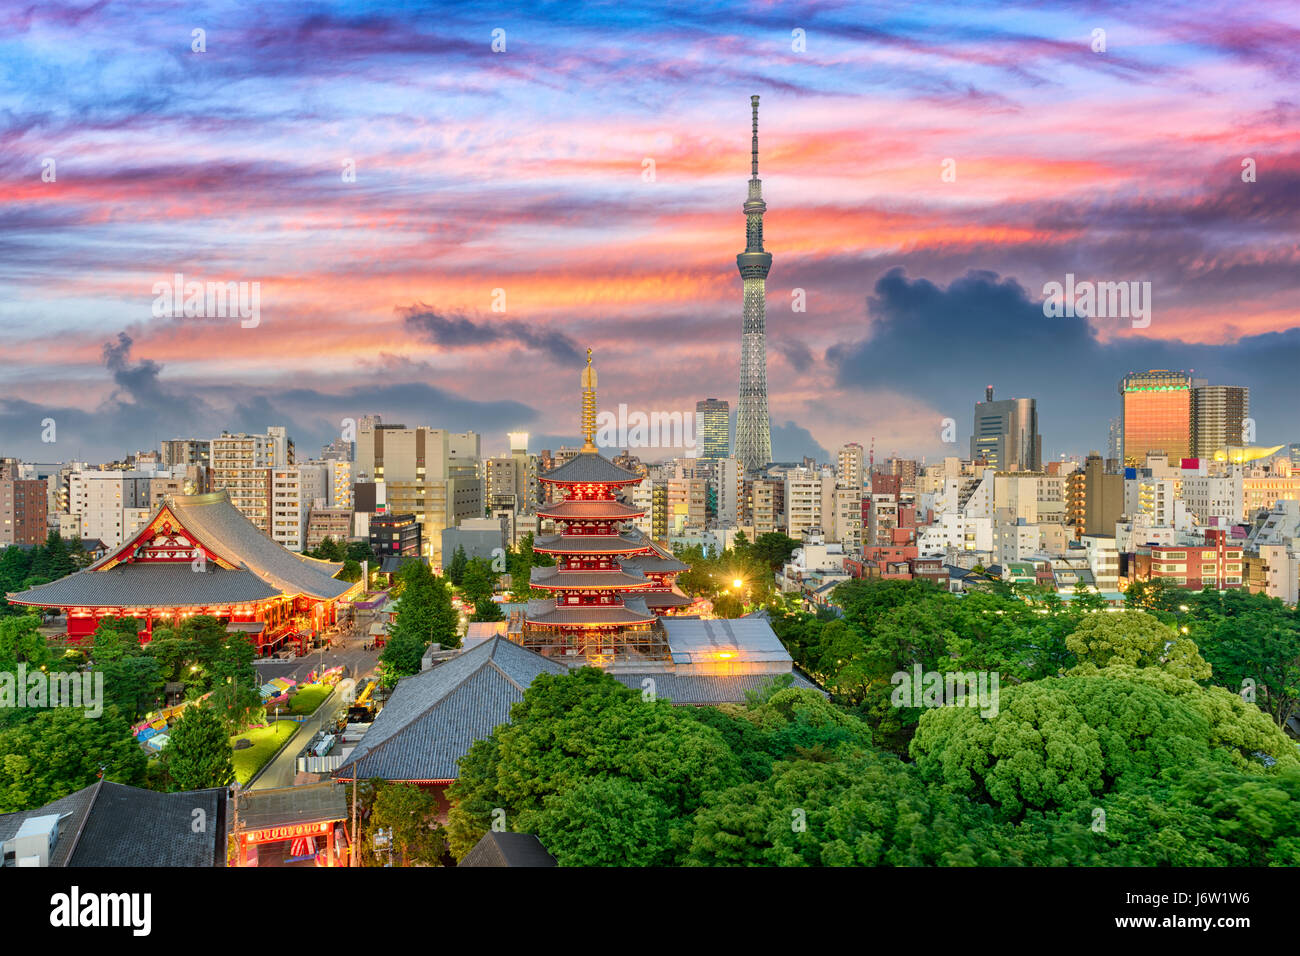 Tokyo, Japan at Sensoji and Skytree Tower. - Stock Image